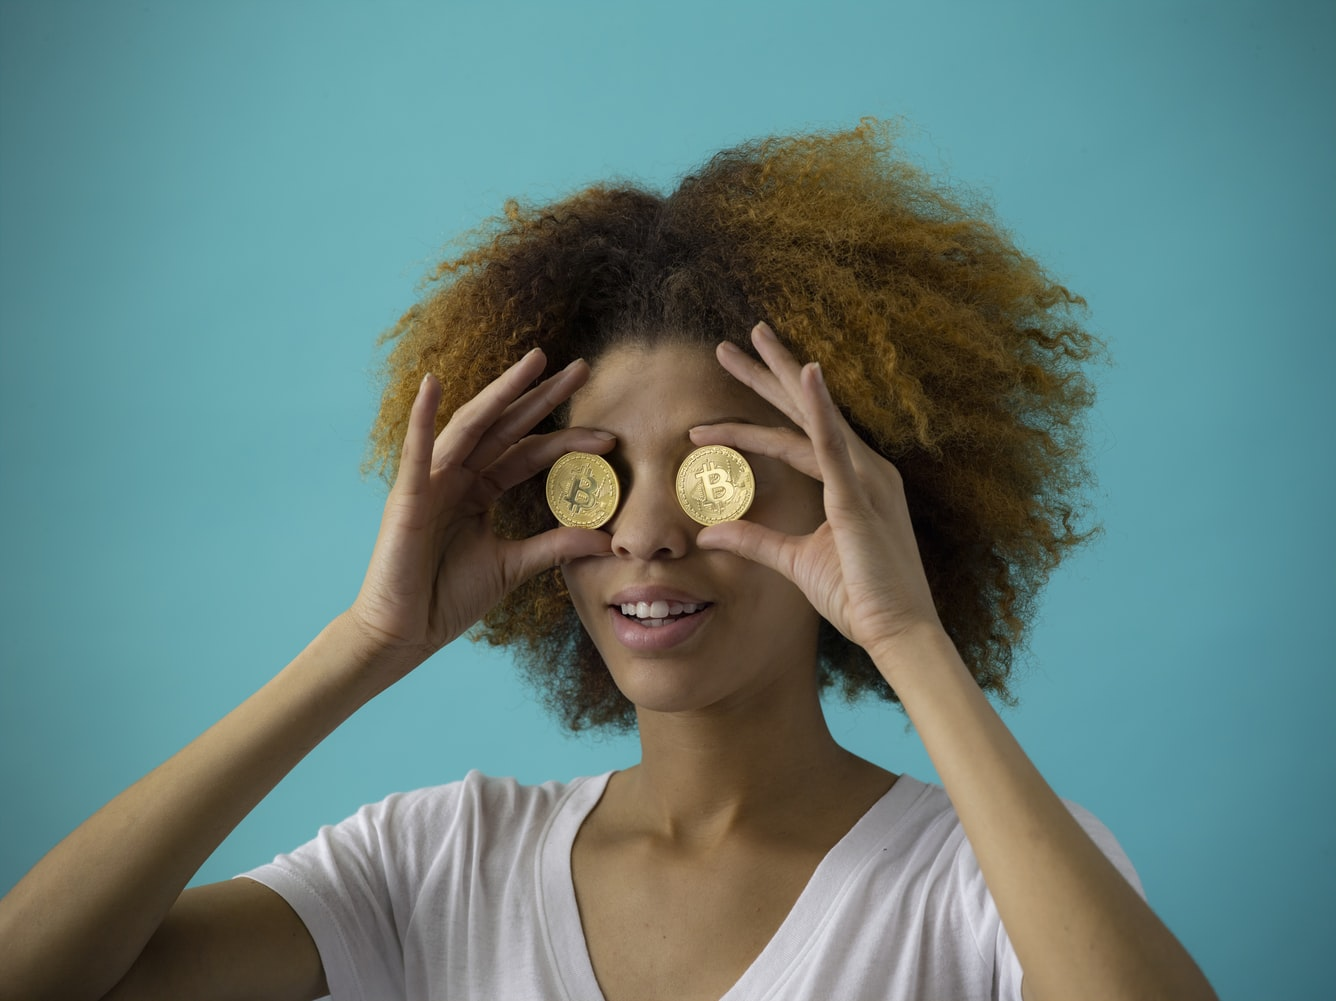 Black woman with an afro holding two bitcoins on her eyes